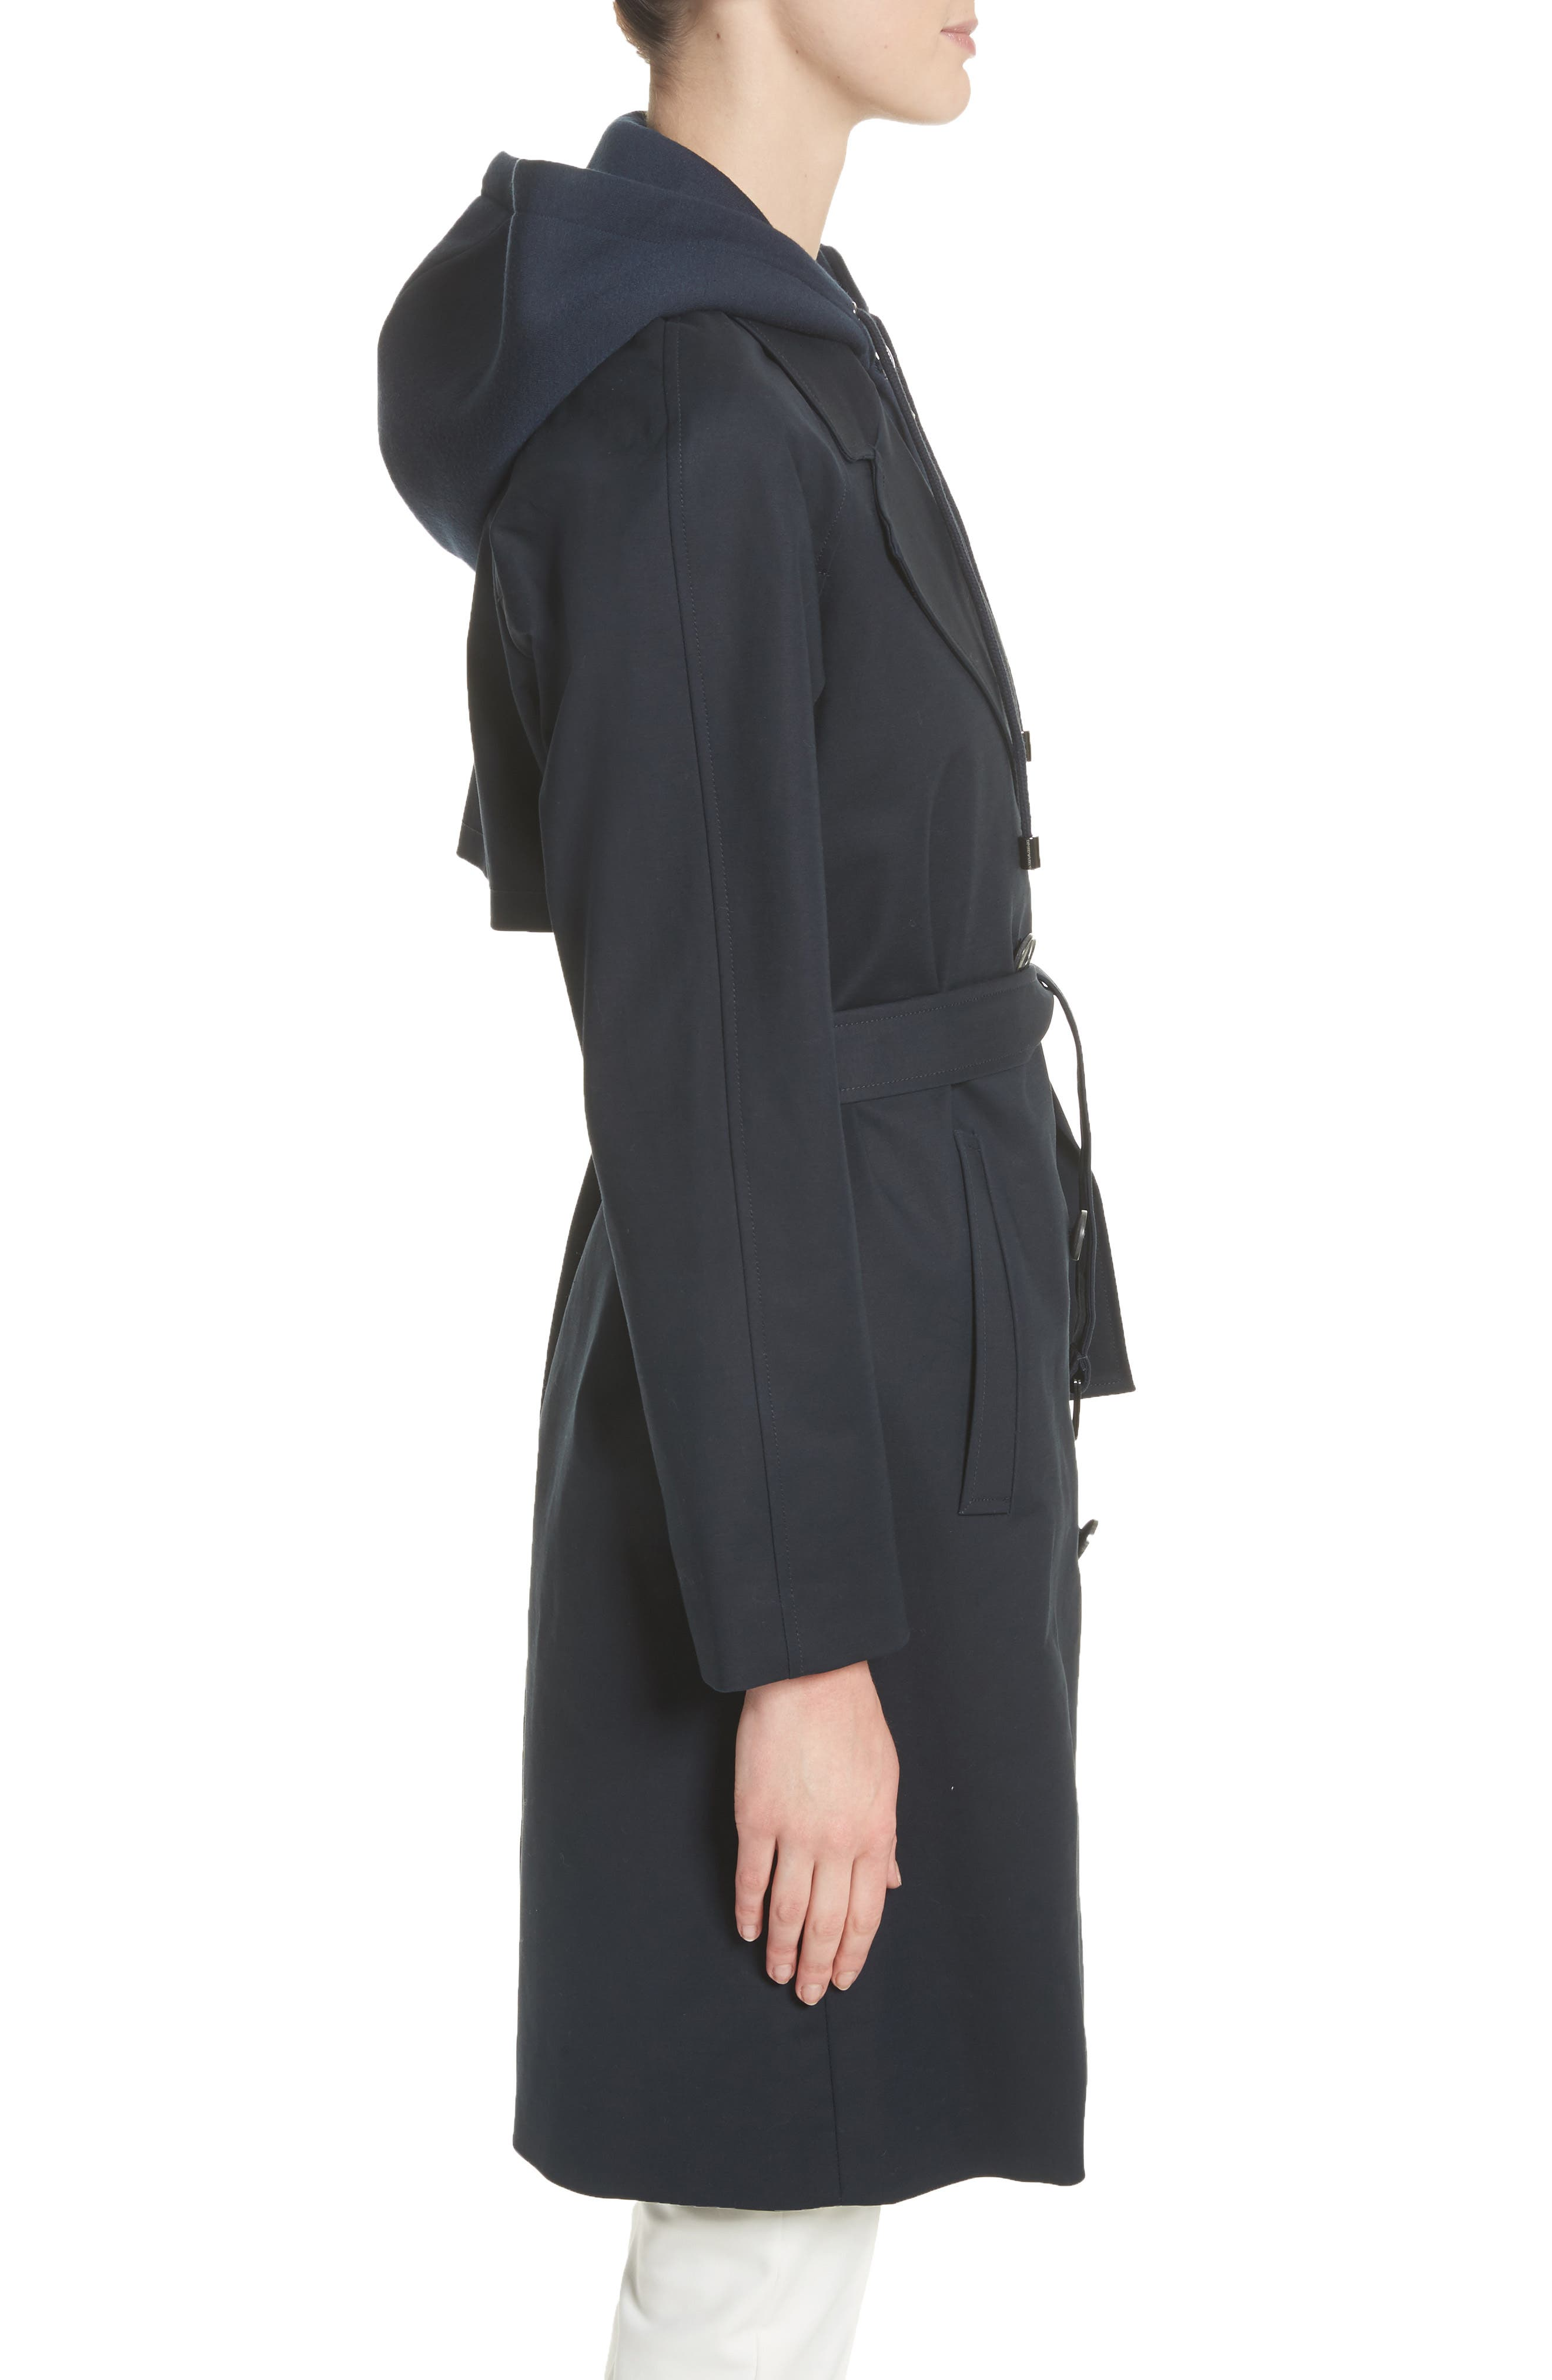 Double Breasted Cotton Blend Trench Coat with Removable Hoodie Inset,                             Alternate thumbnail 4, color,                             Navy